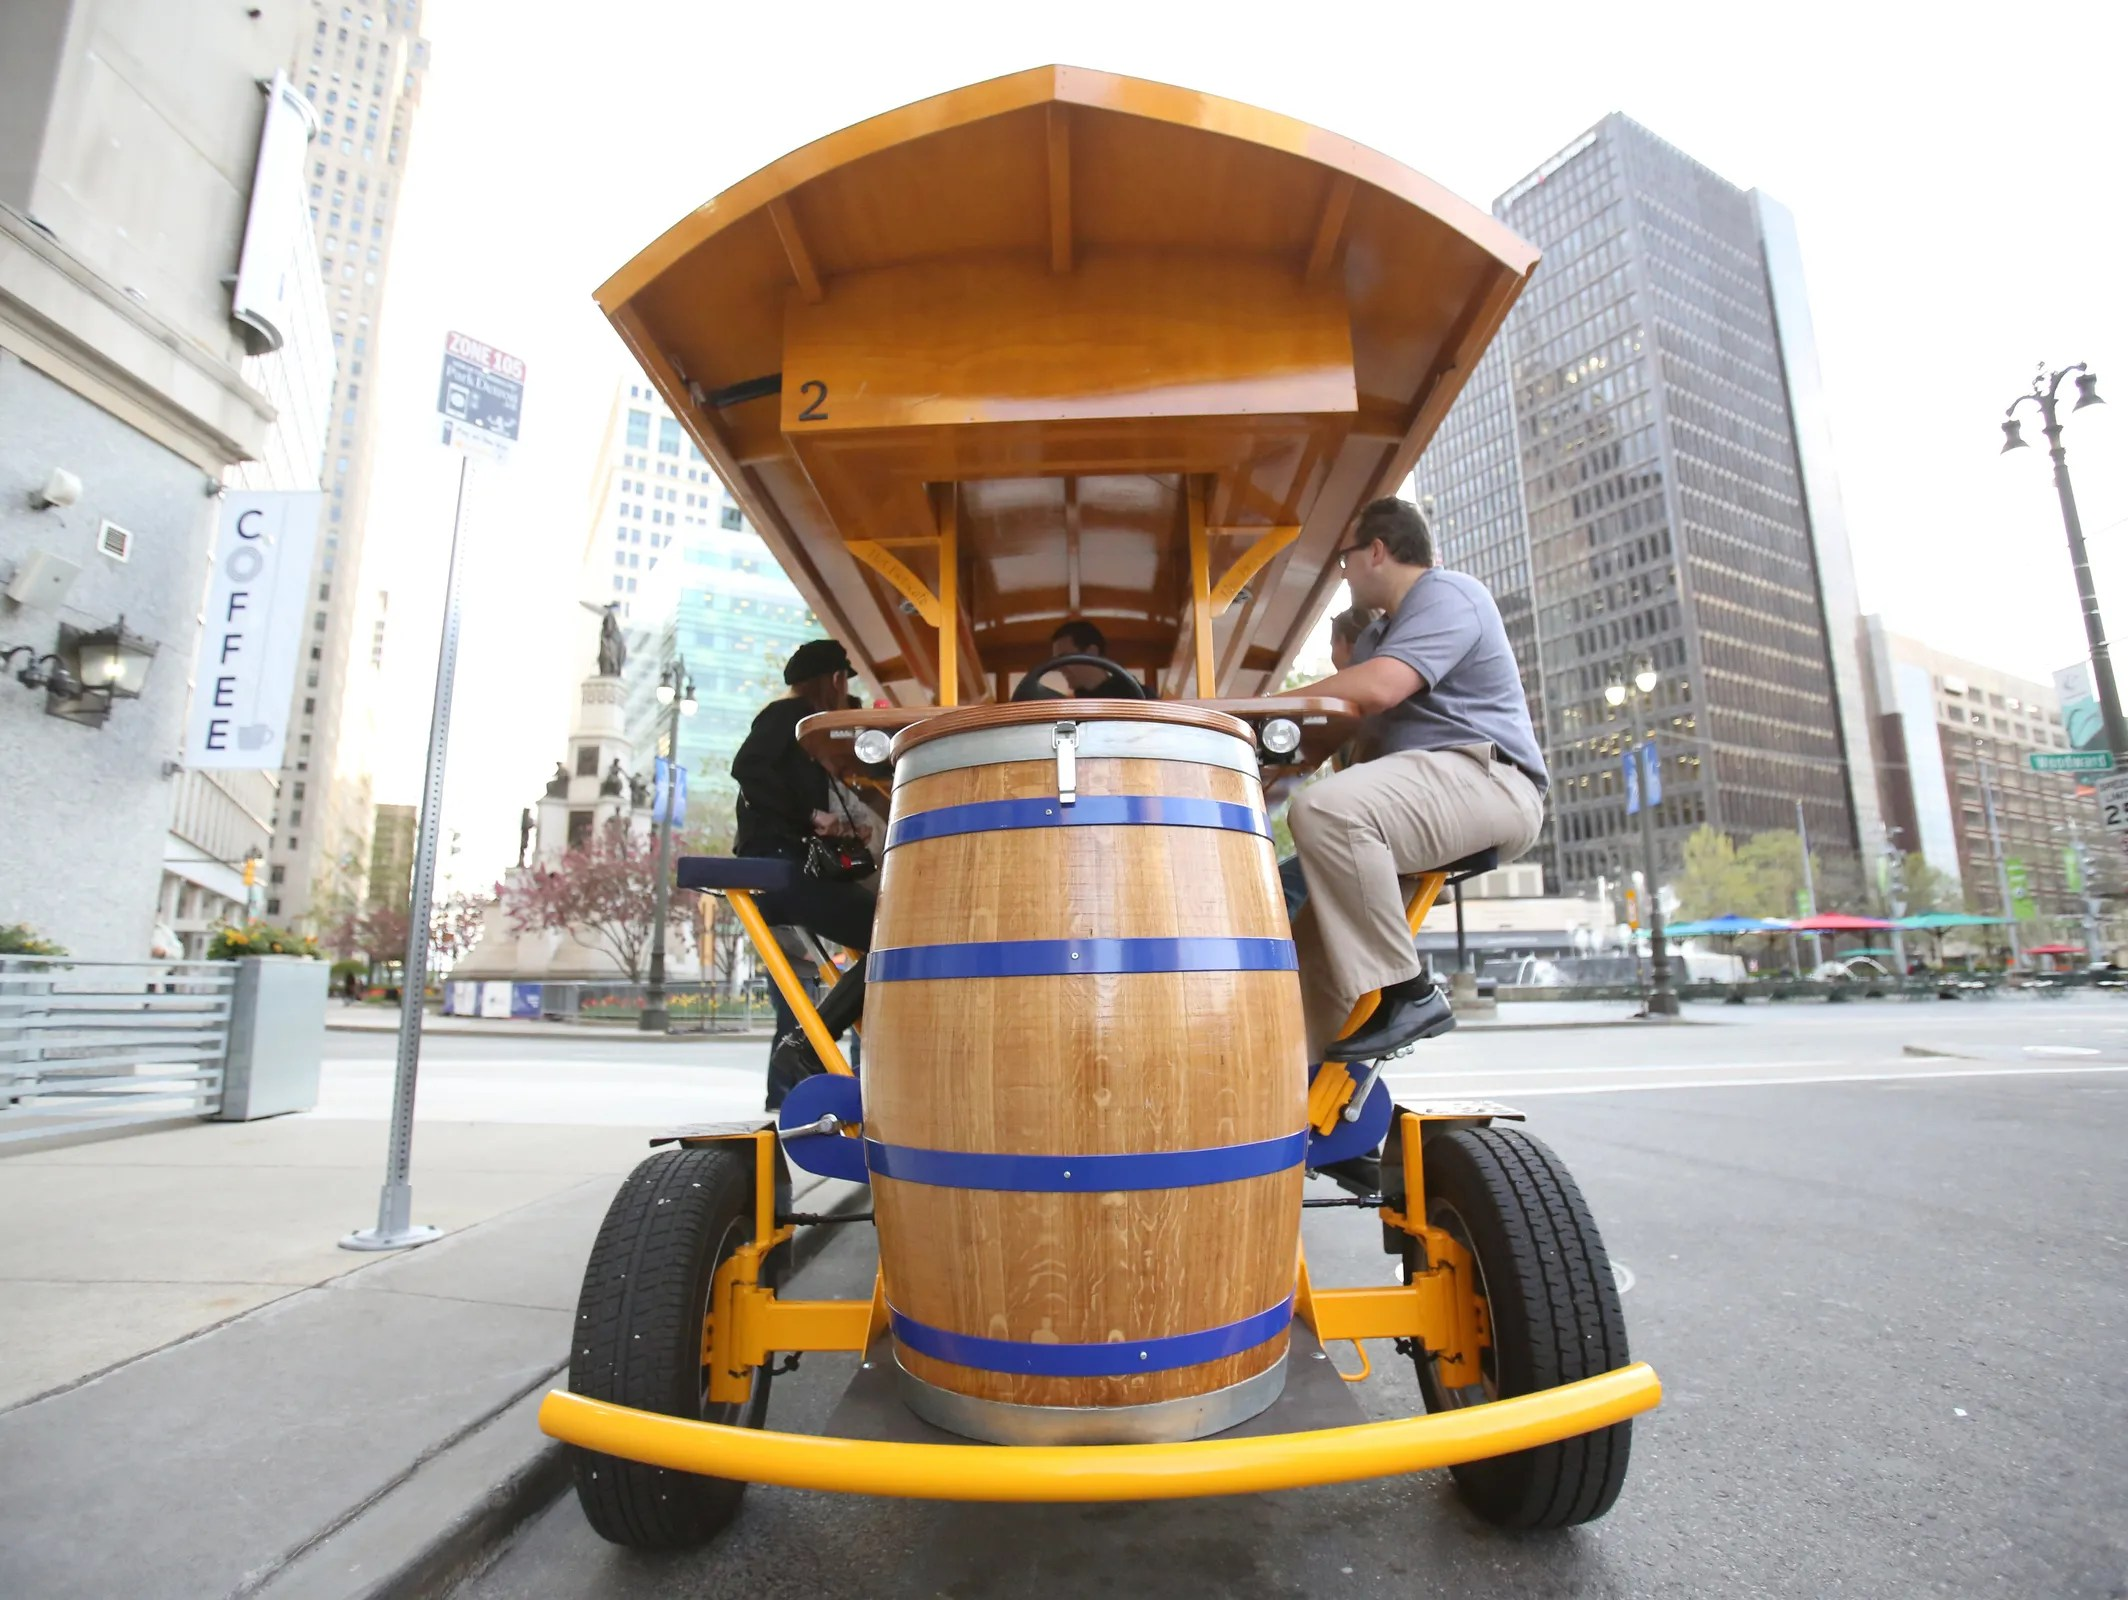 Detroit Will Allow Booze On Pedal Pubs